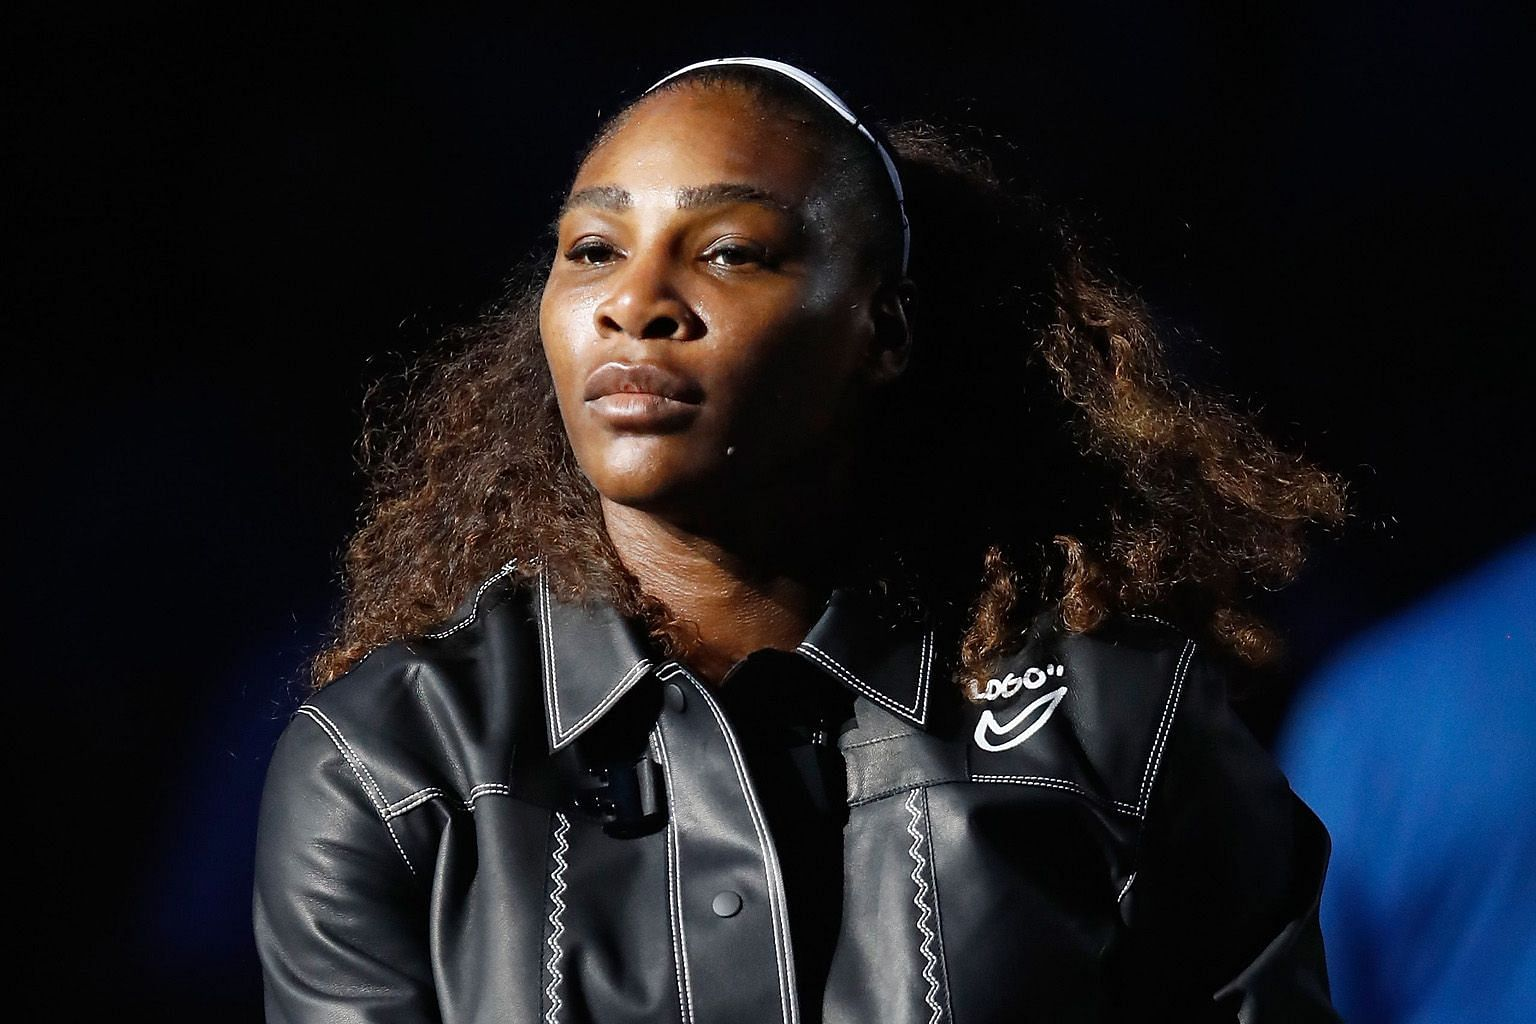 Serena Williams prior to her match against Carina Witthoft, which she won 6-2, 6-2 to set up a clash with Venus.